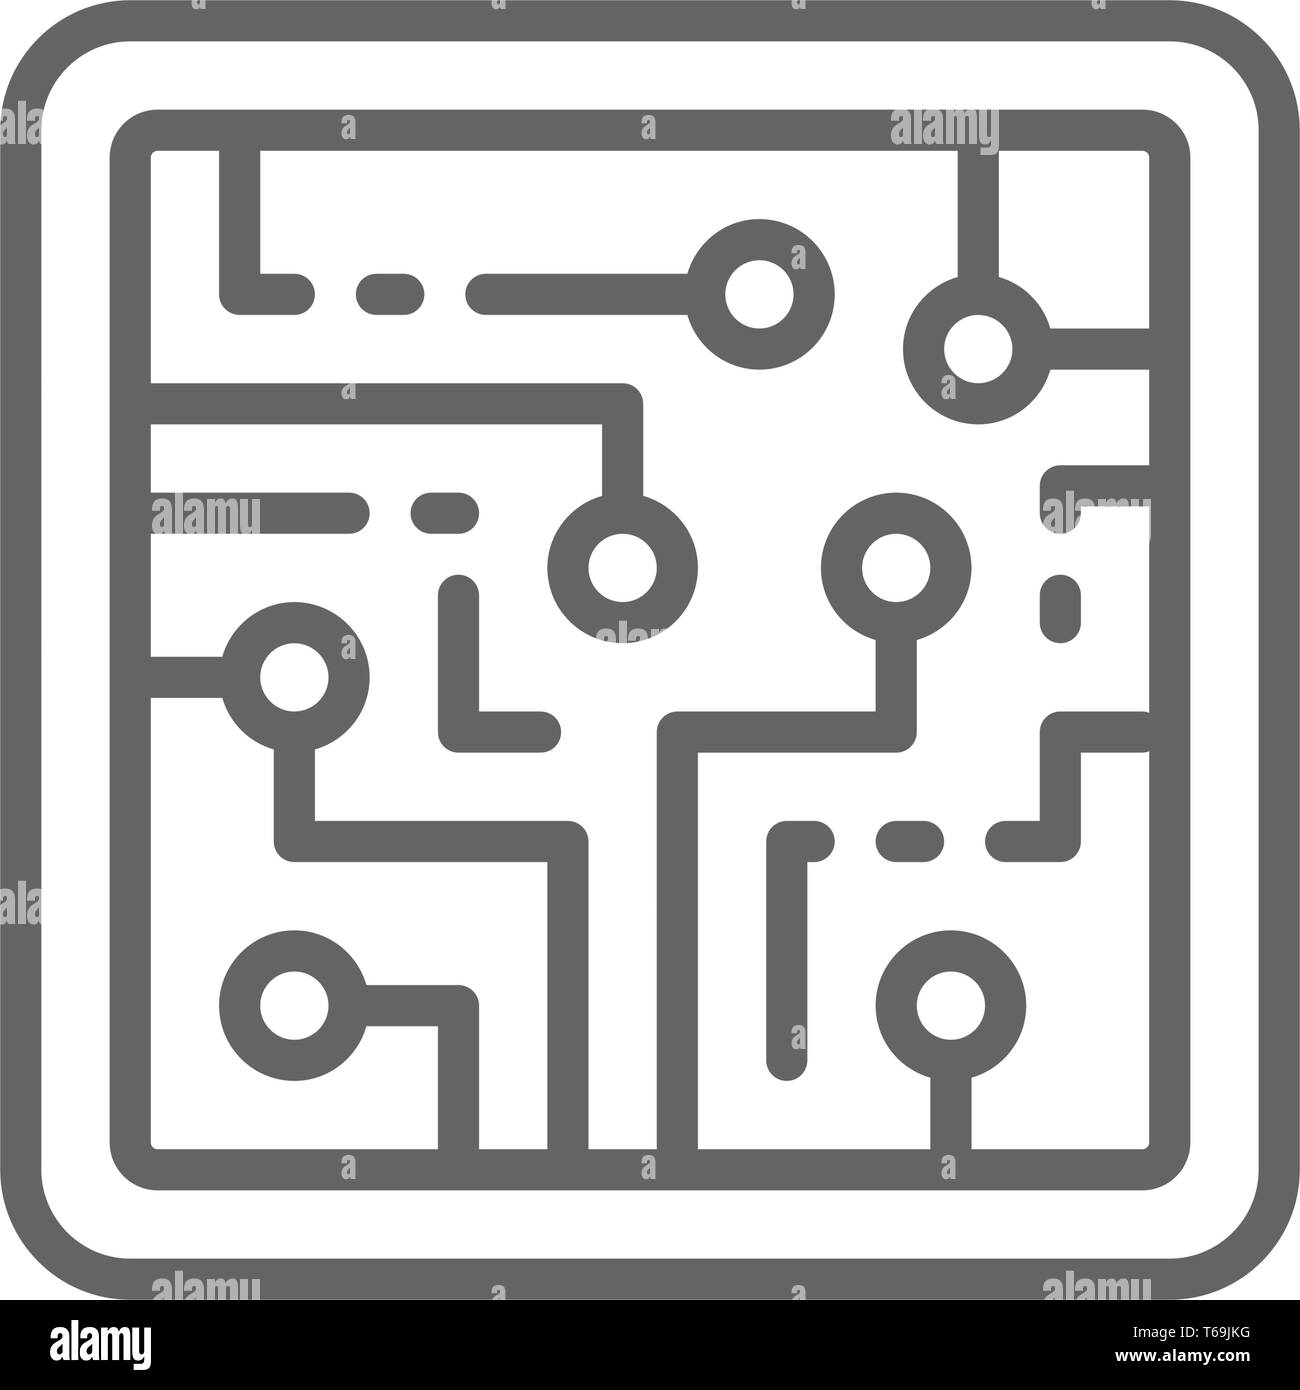 CPU, computer chip, electronic circuit, processor line icon. - Stock Image